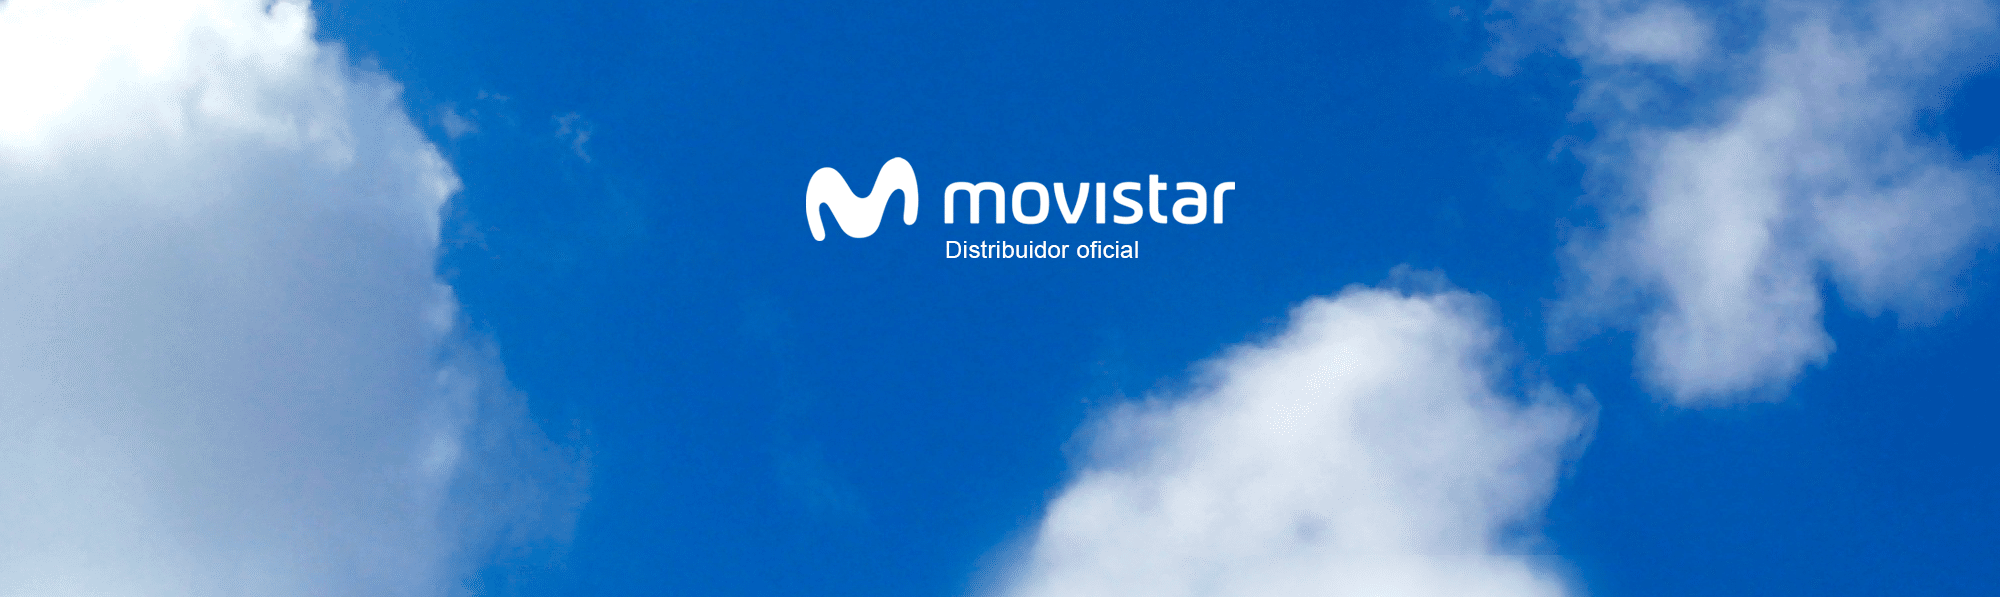 Movistar Distribuidor Oficial